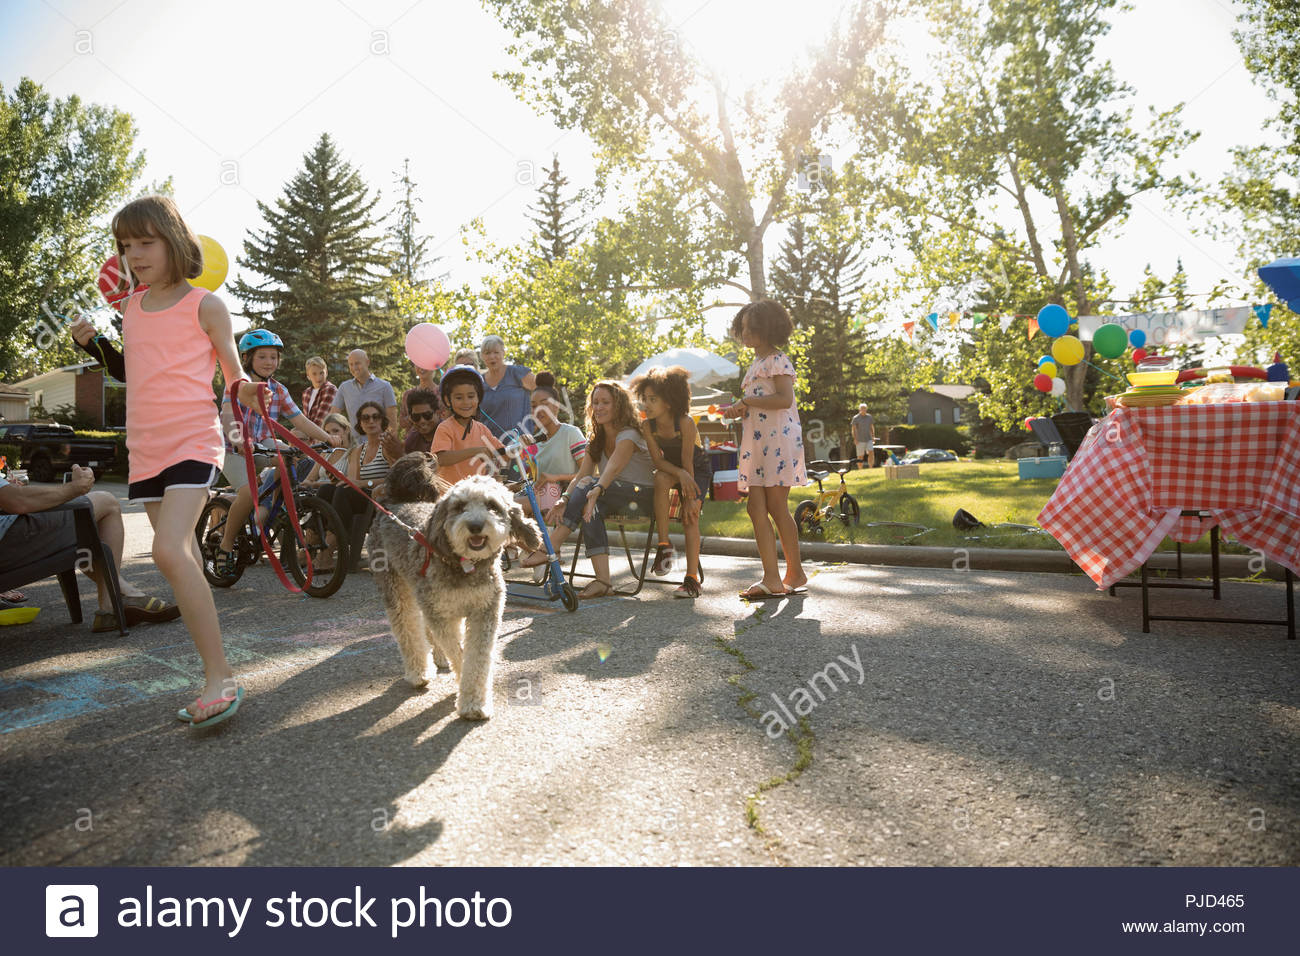 Kids and dog parade at summer neighborhood block party in sunny park - Stock Image